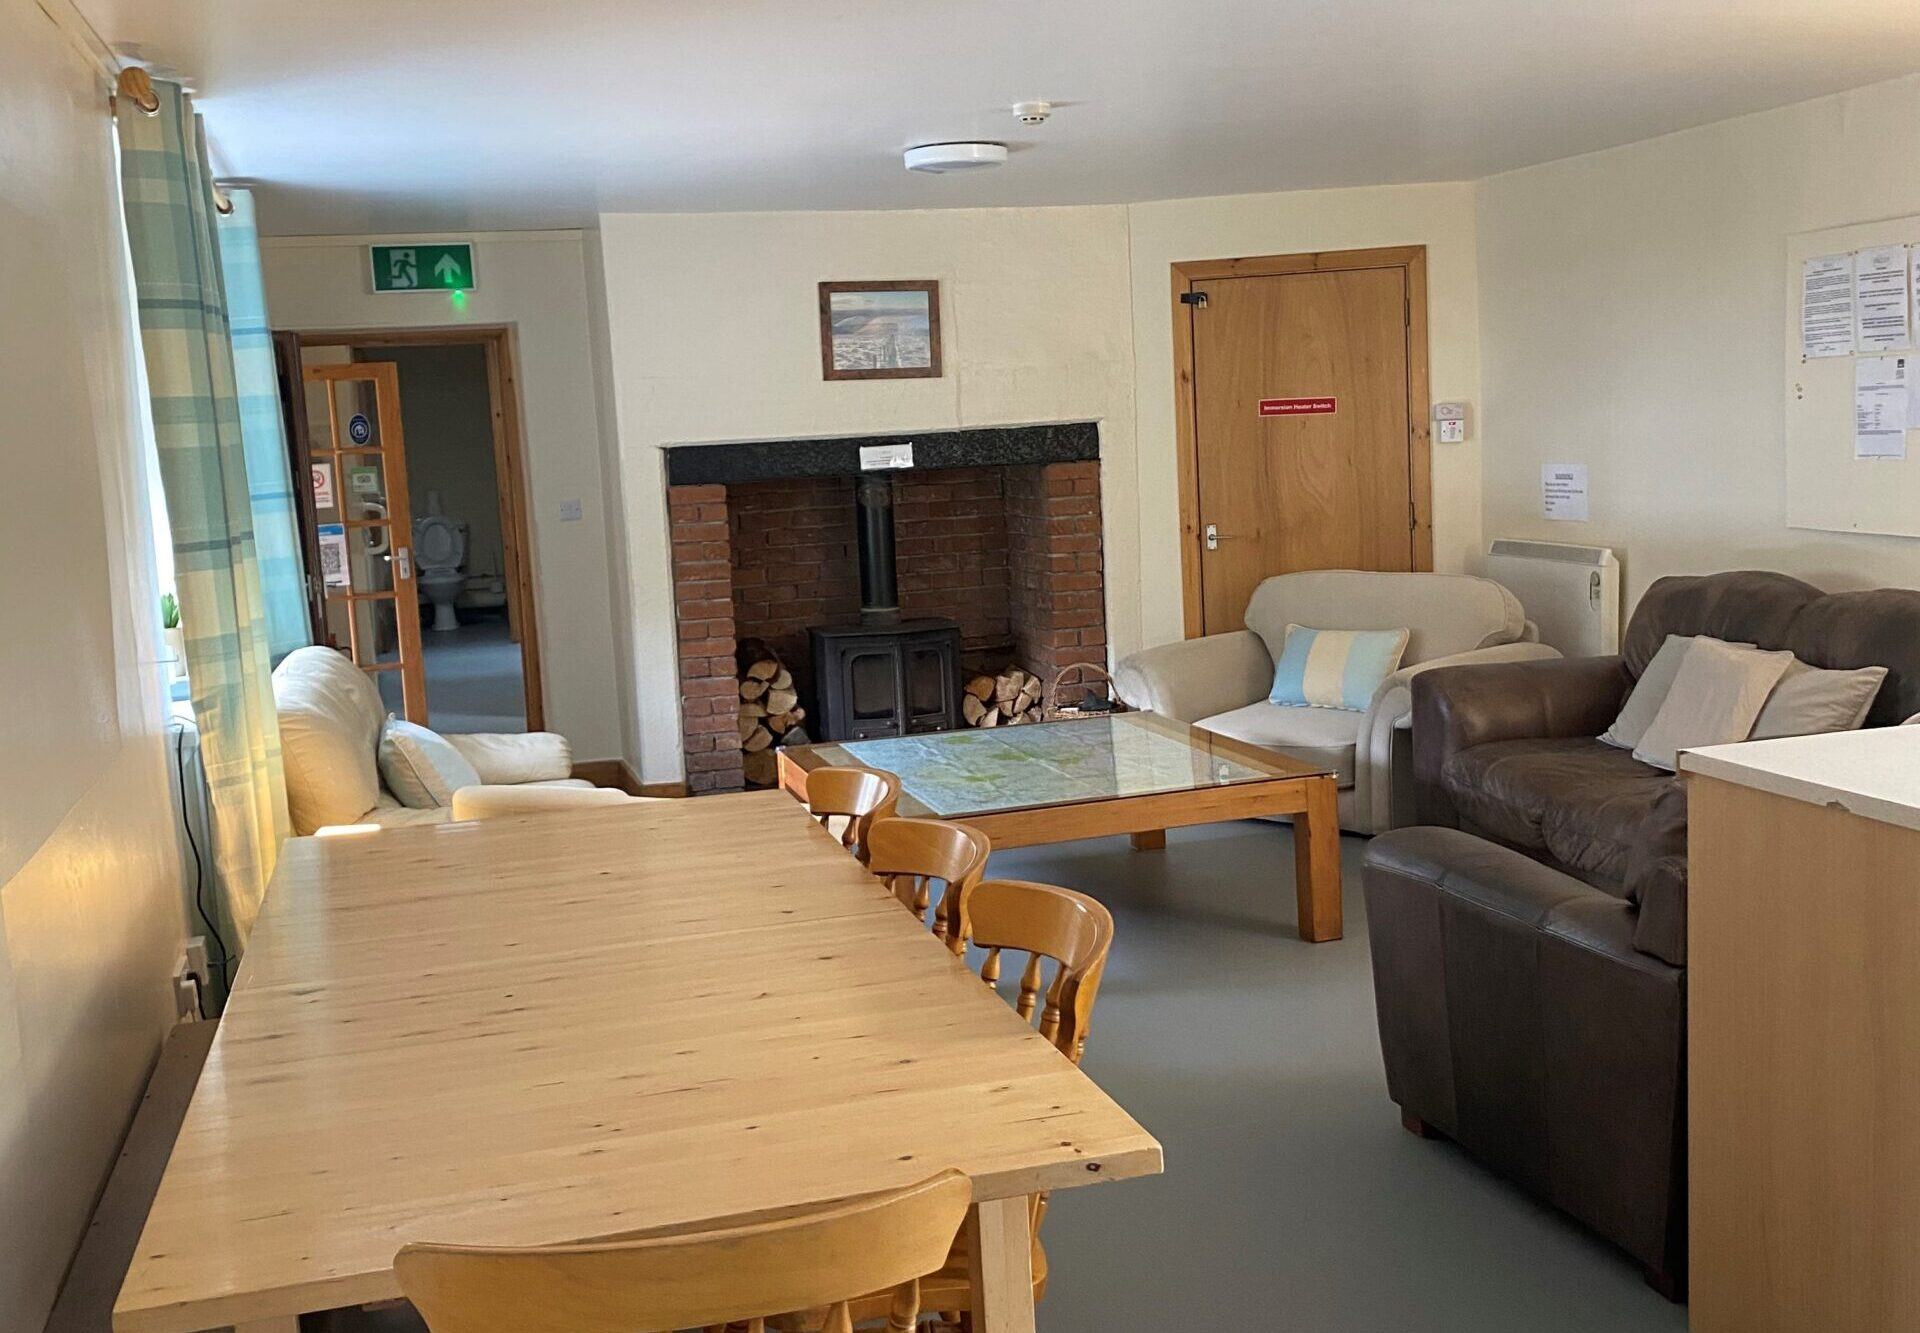 Bunkhouse new images 8